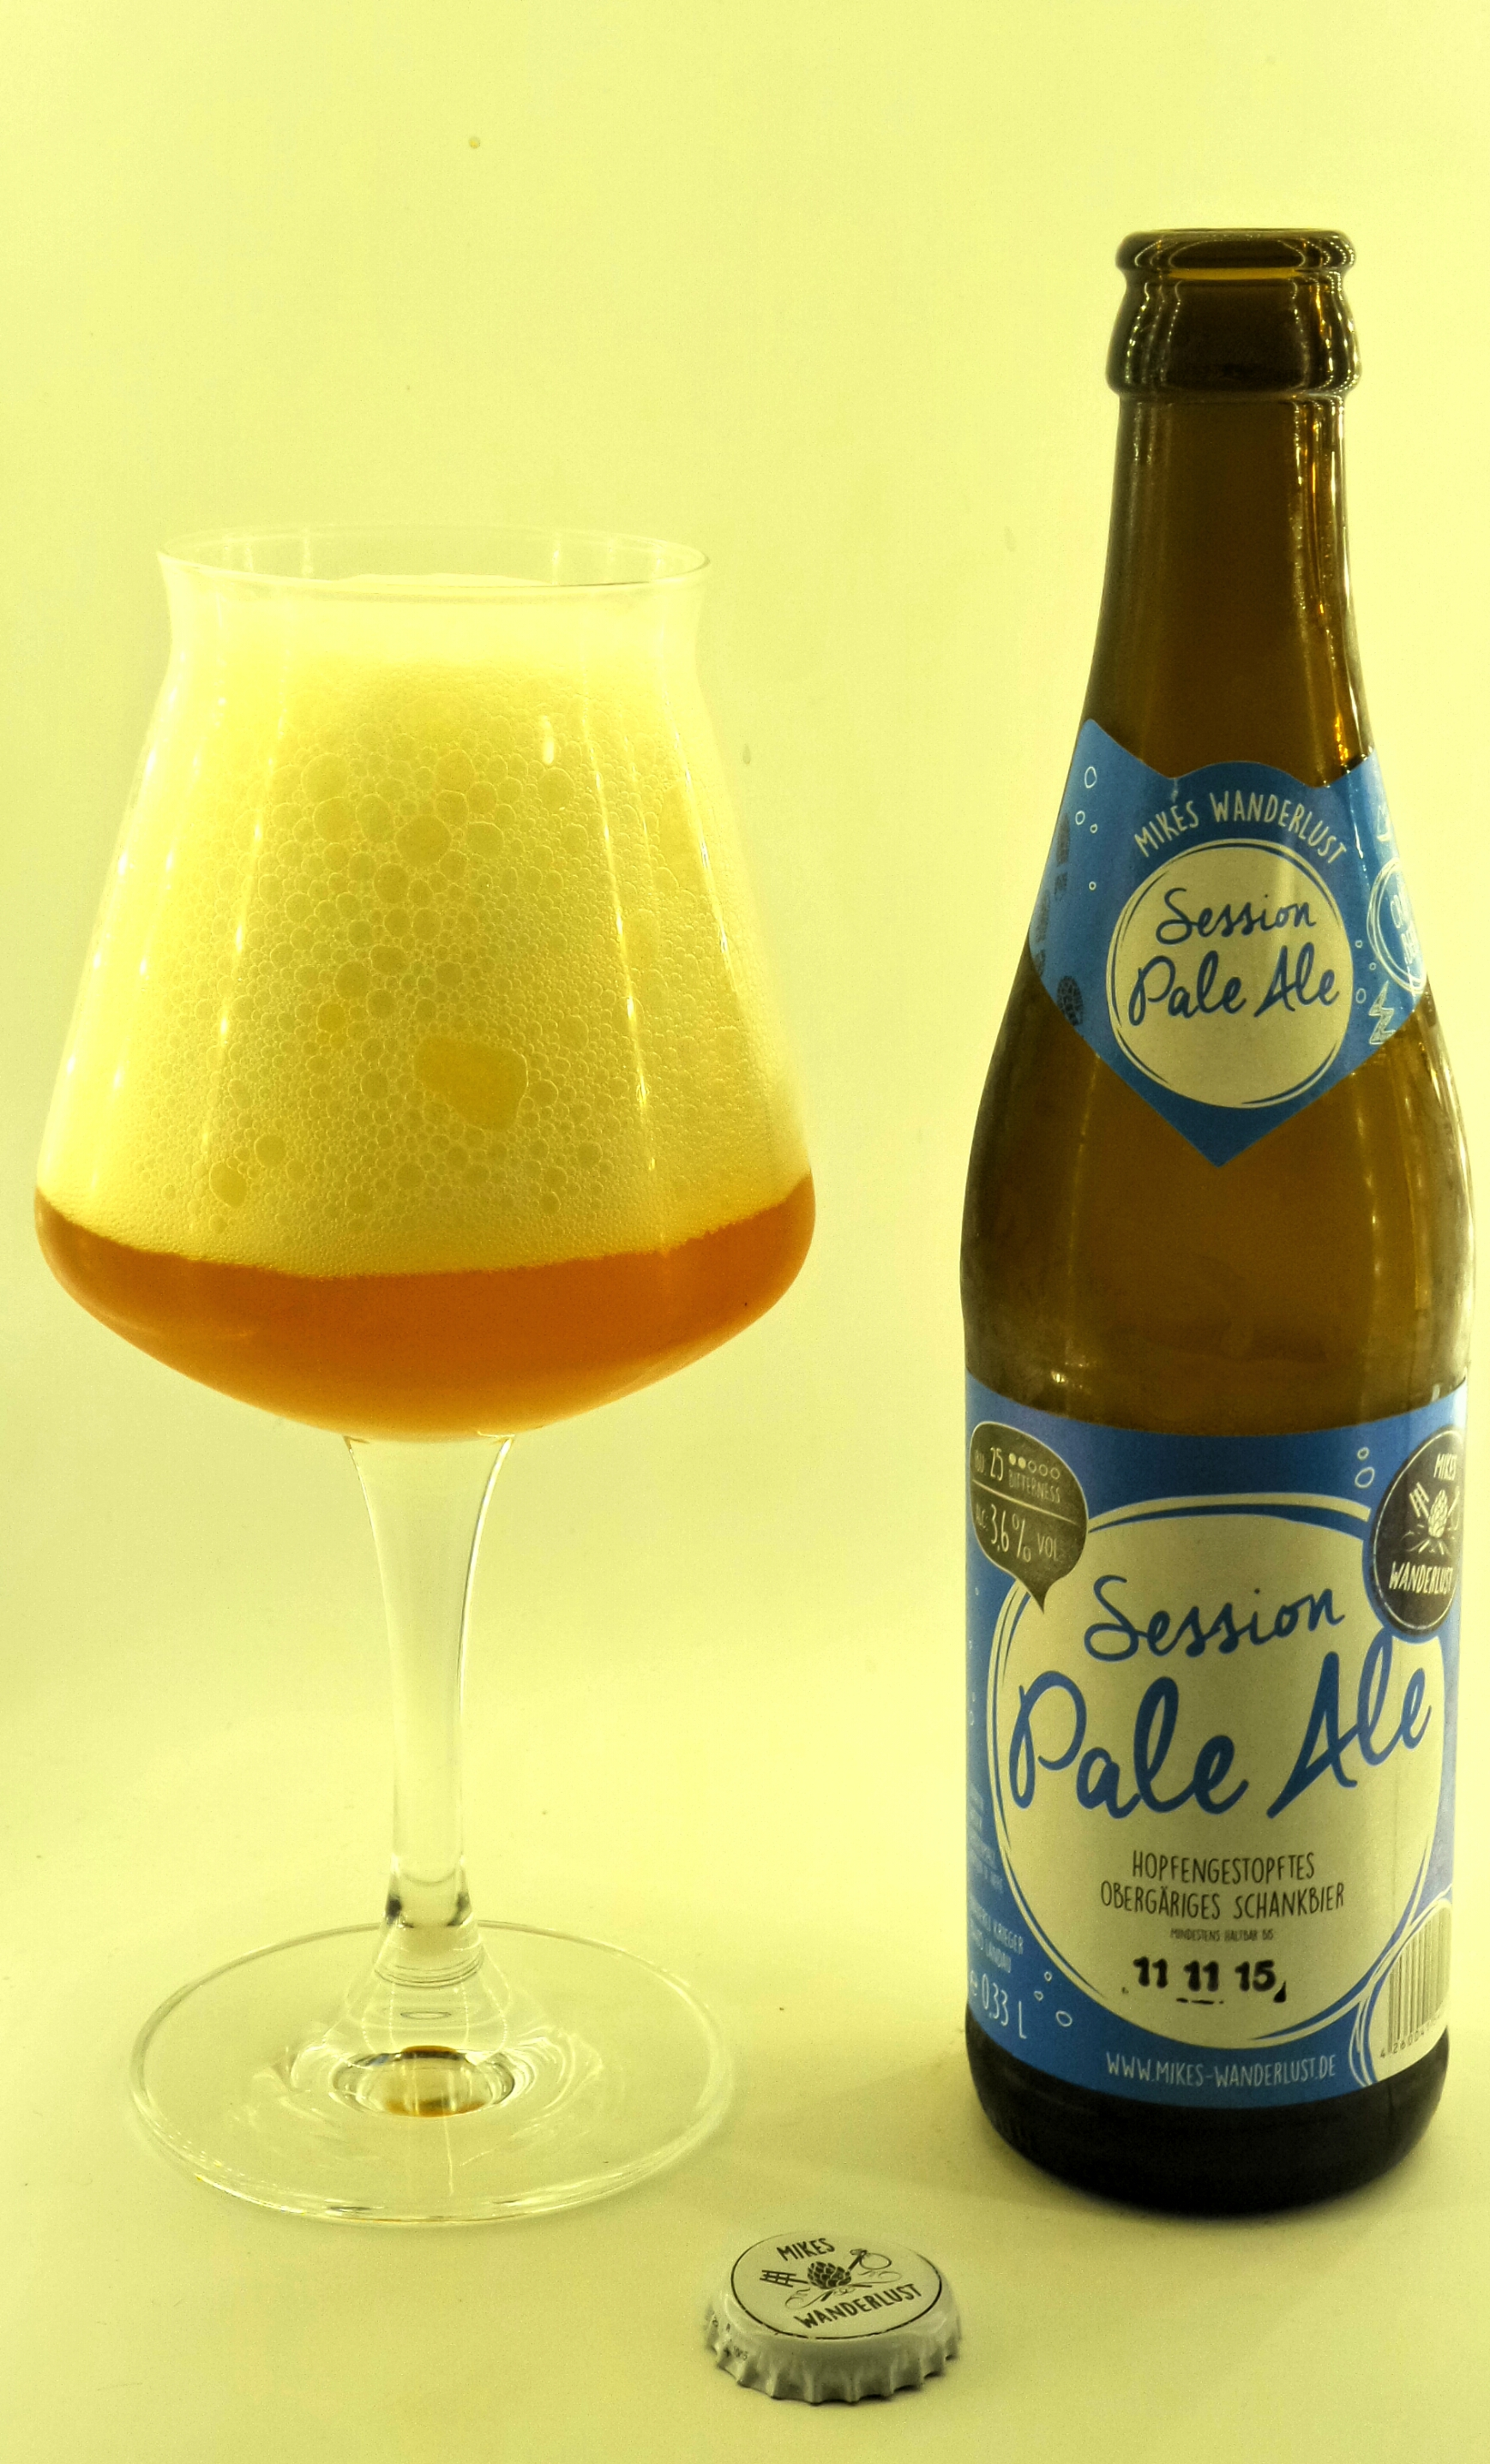 Mikes Wanderlust Session Pale Ale